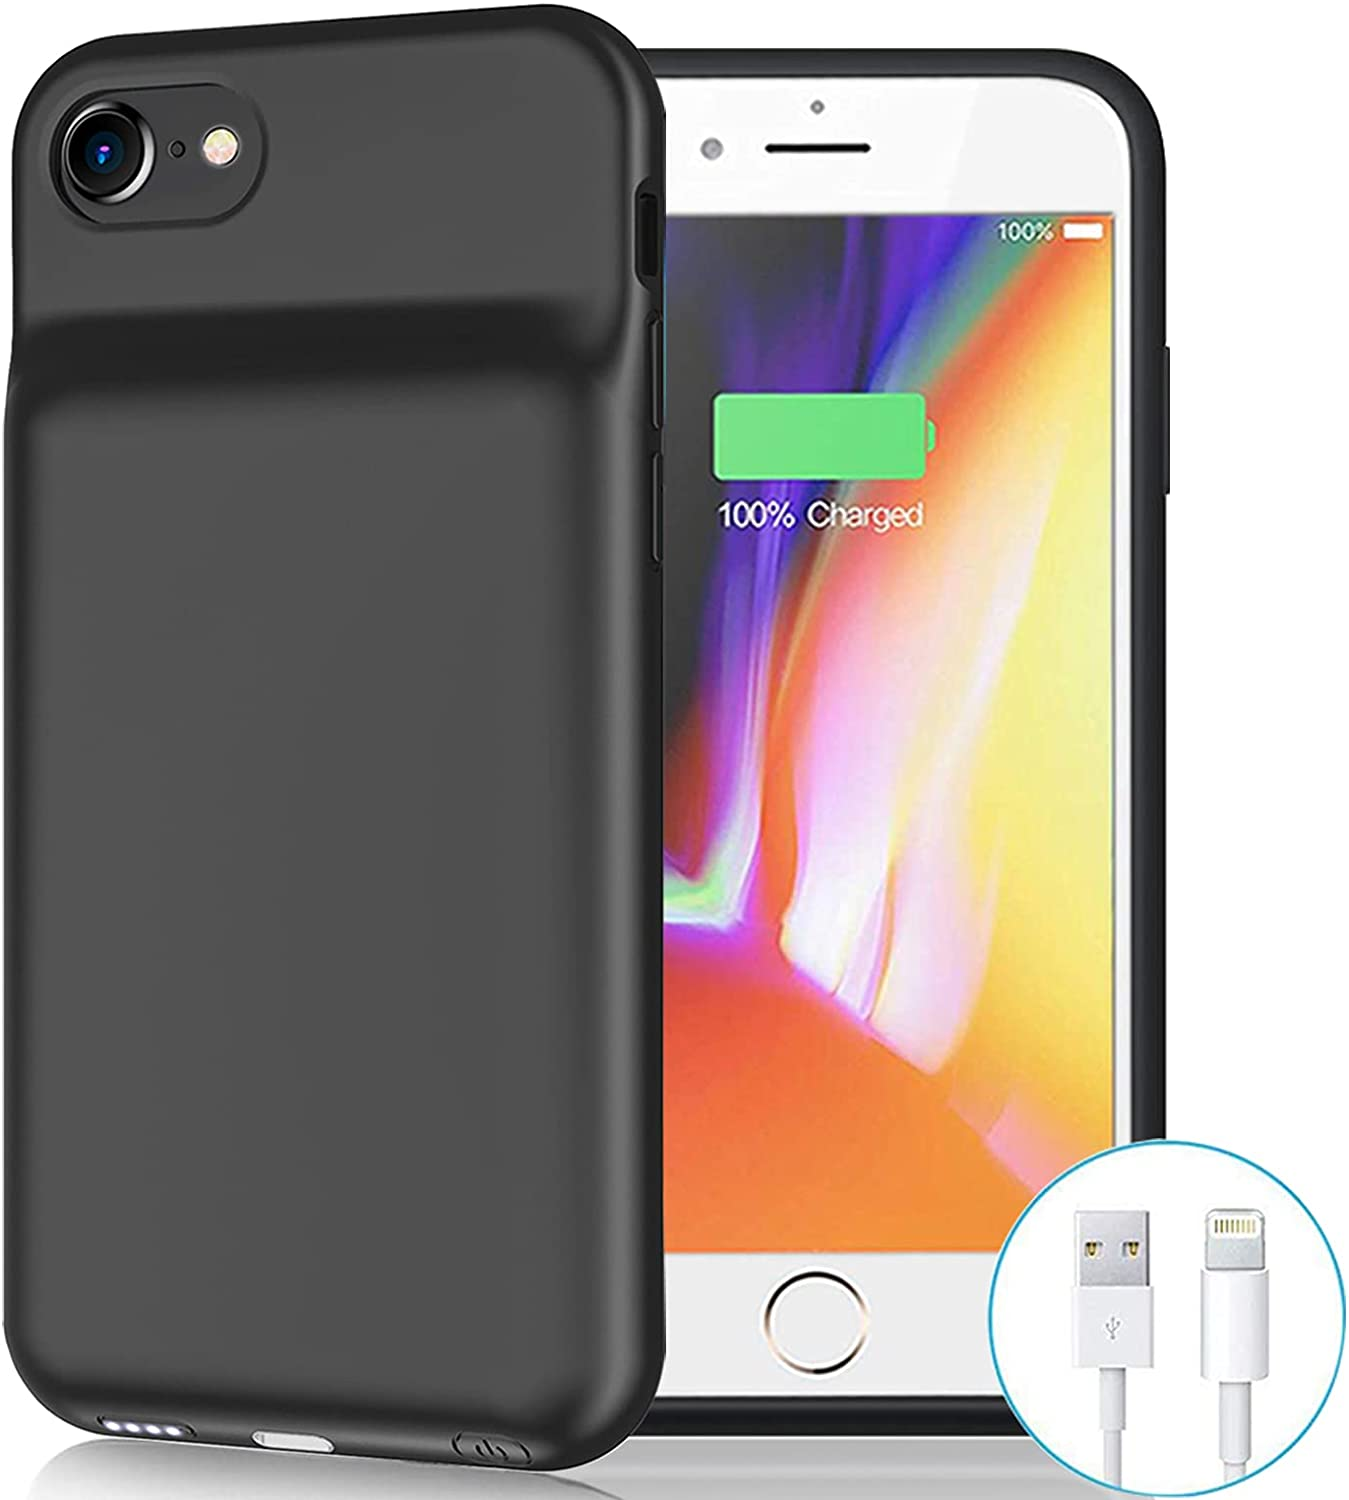 Battery Case for iPhone 6/6s/7/8/SE 2020(2nd Generation), 6500mAh Portable Rechargeable Charging Case for iPhone 6/6s/7/8/ SE 2020(2nd Generation) (4.7 inch) Extended Battery Charger Case (Black)